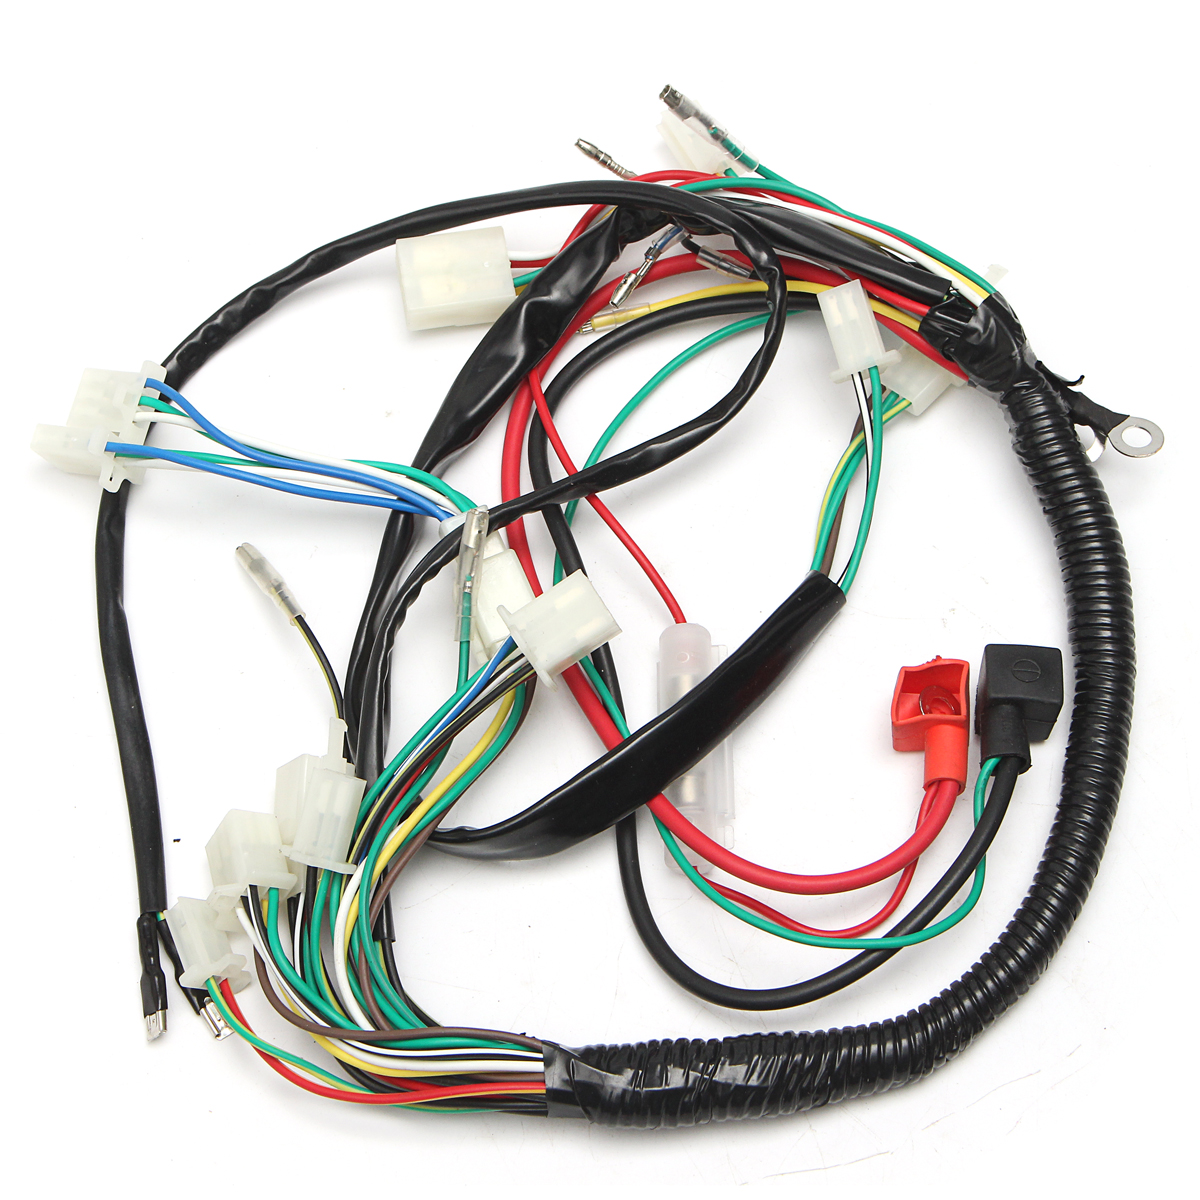 alarm system cdi wiring harness remote start switch high security for electric alex nld